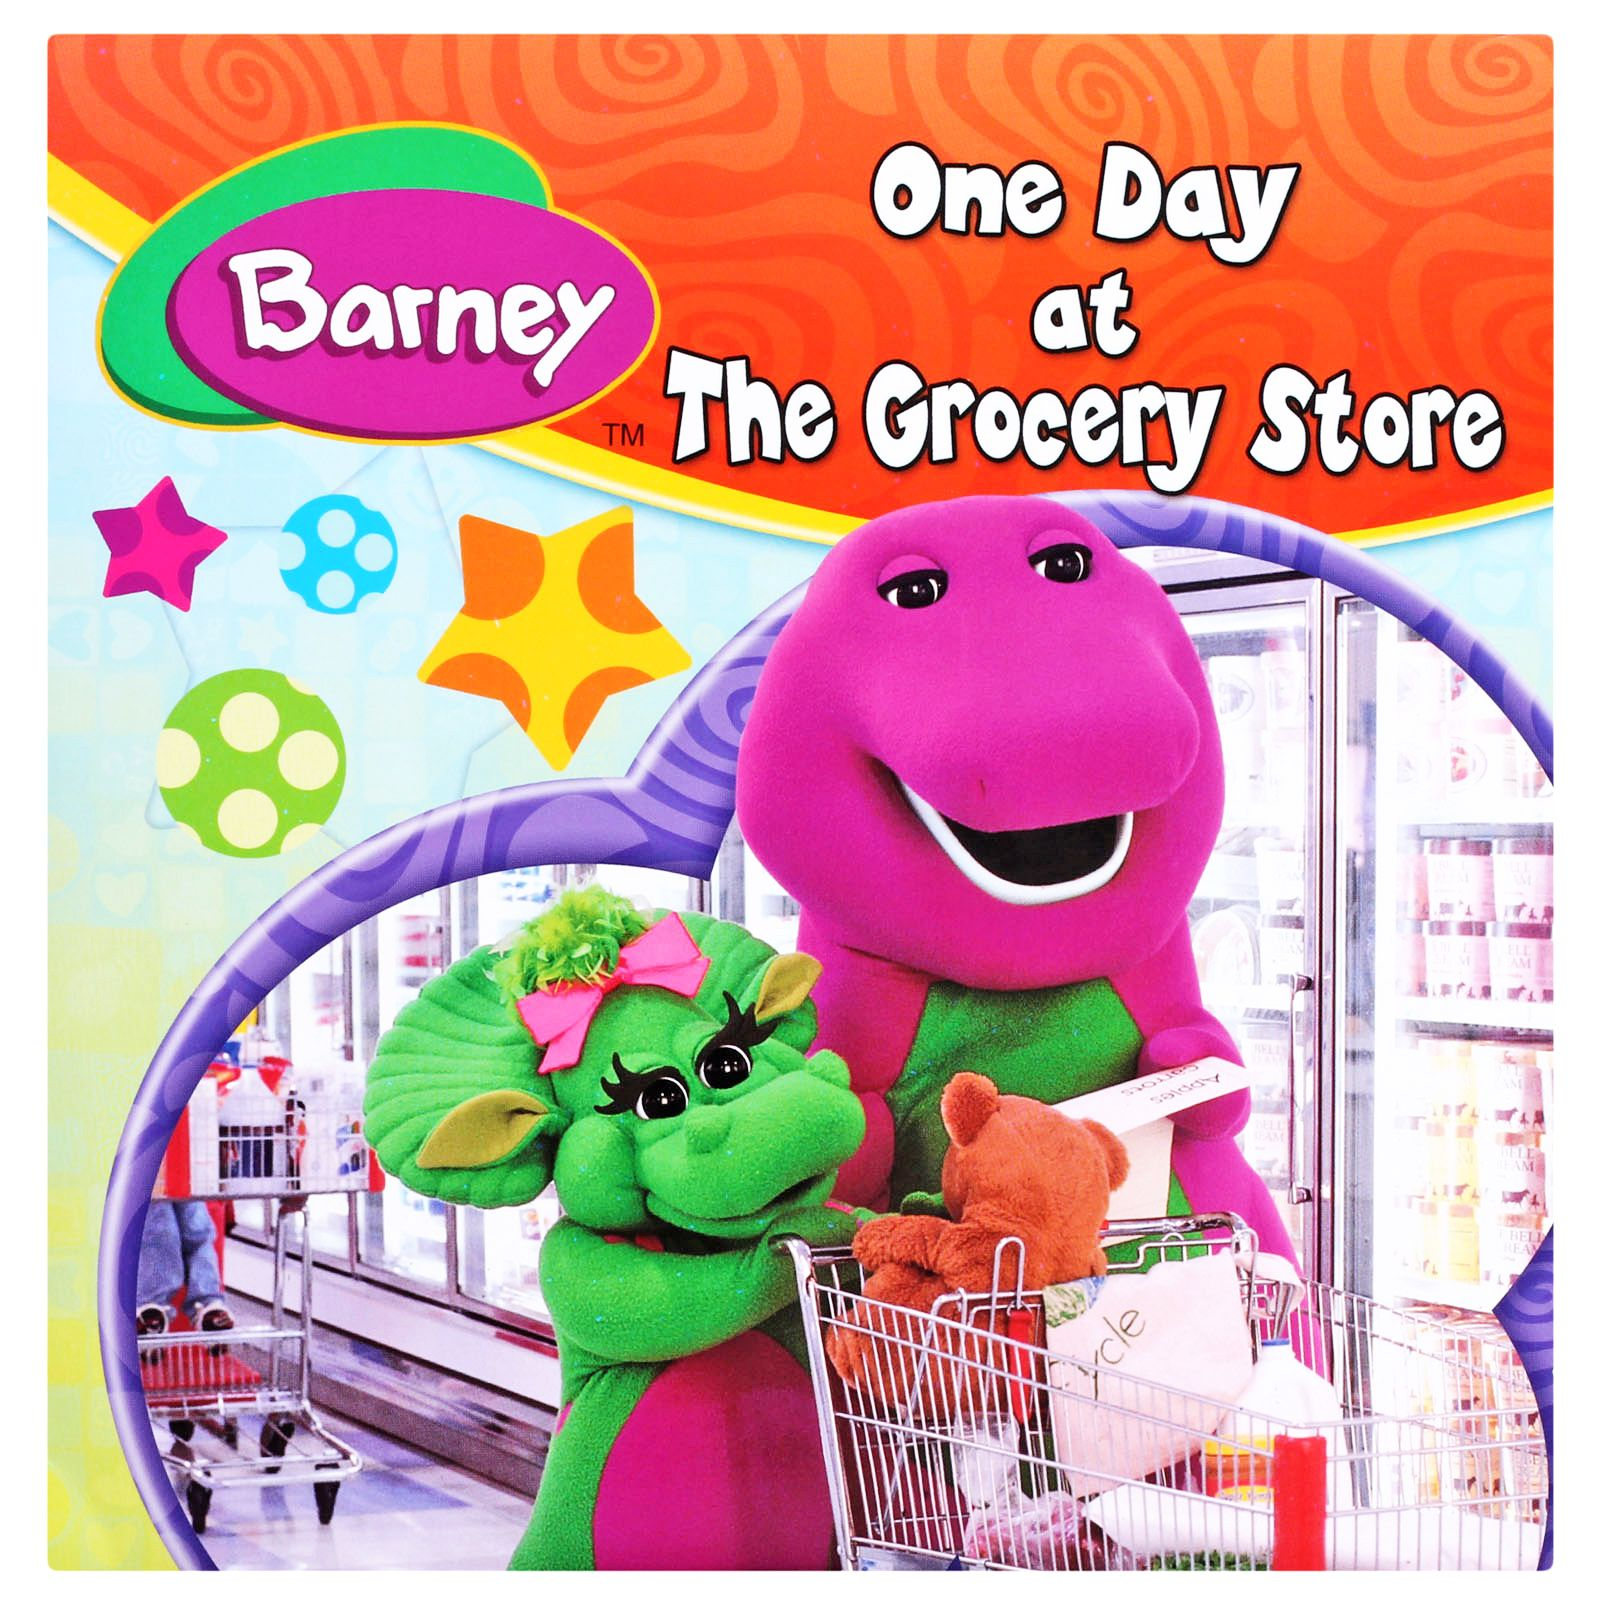 Barney S Hats Book Pictures to Pin on Pinterest - PinsDaddy